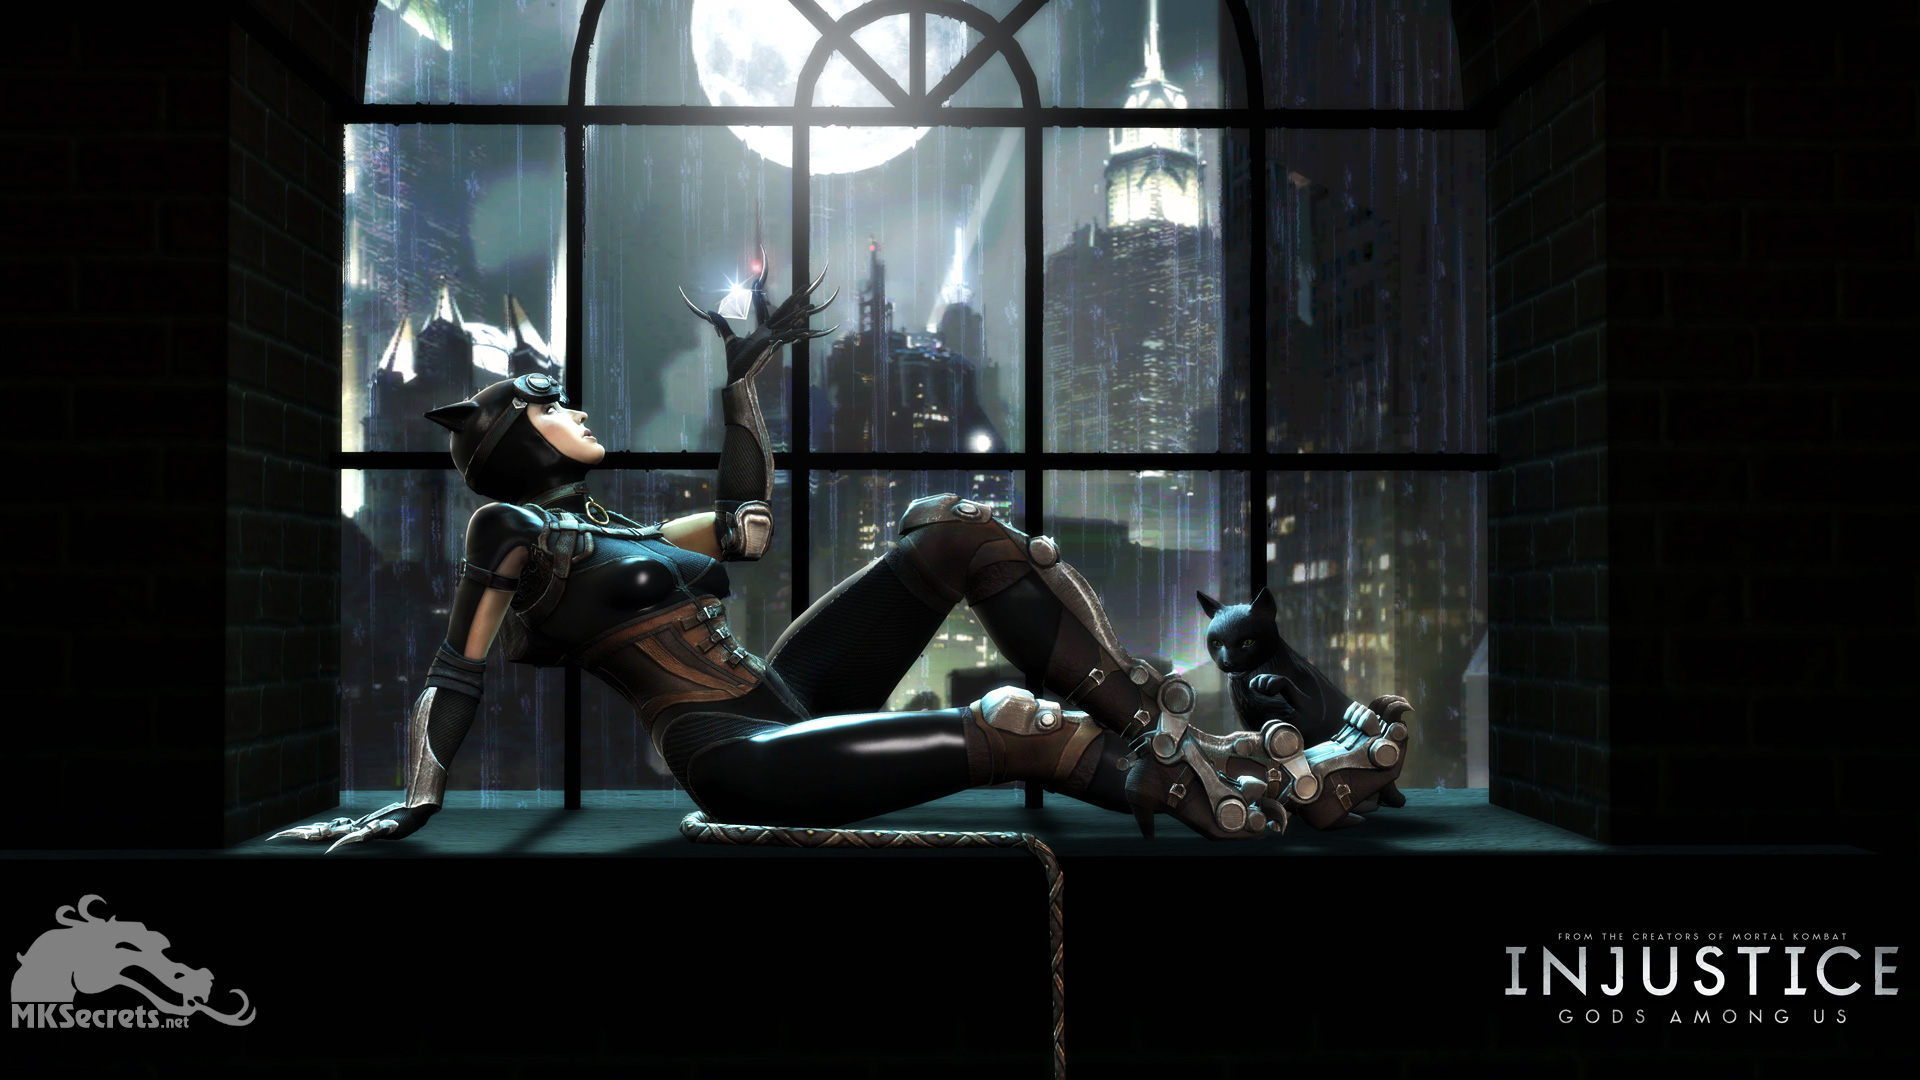 injustice gods among us wallpaper catwoman injustice online. Black Bedroom Furniture Sets. Home Design Ideas